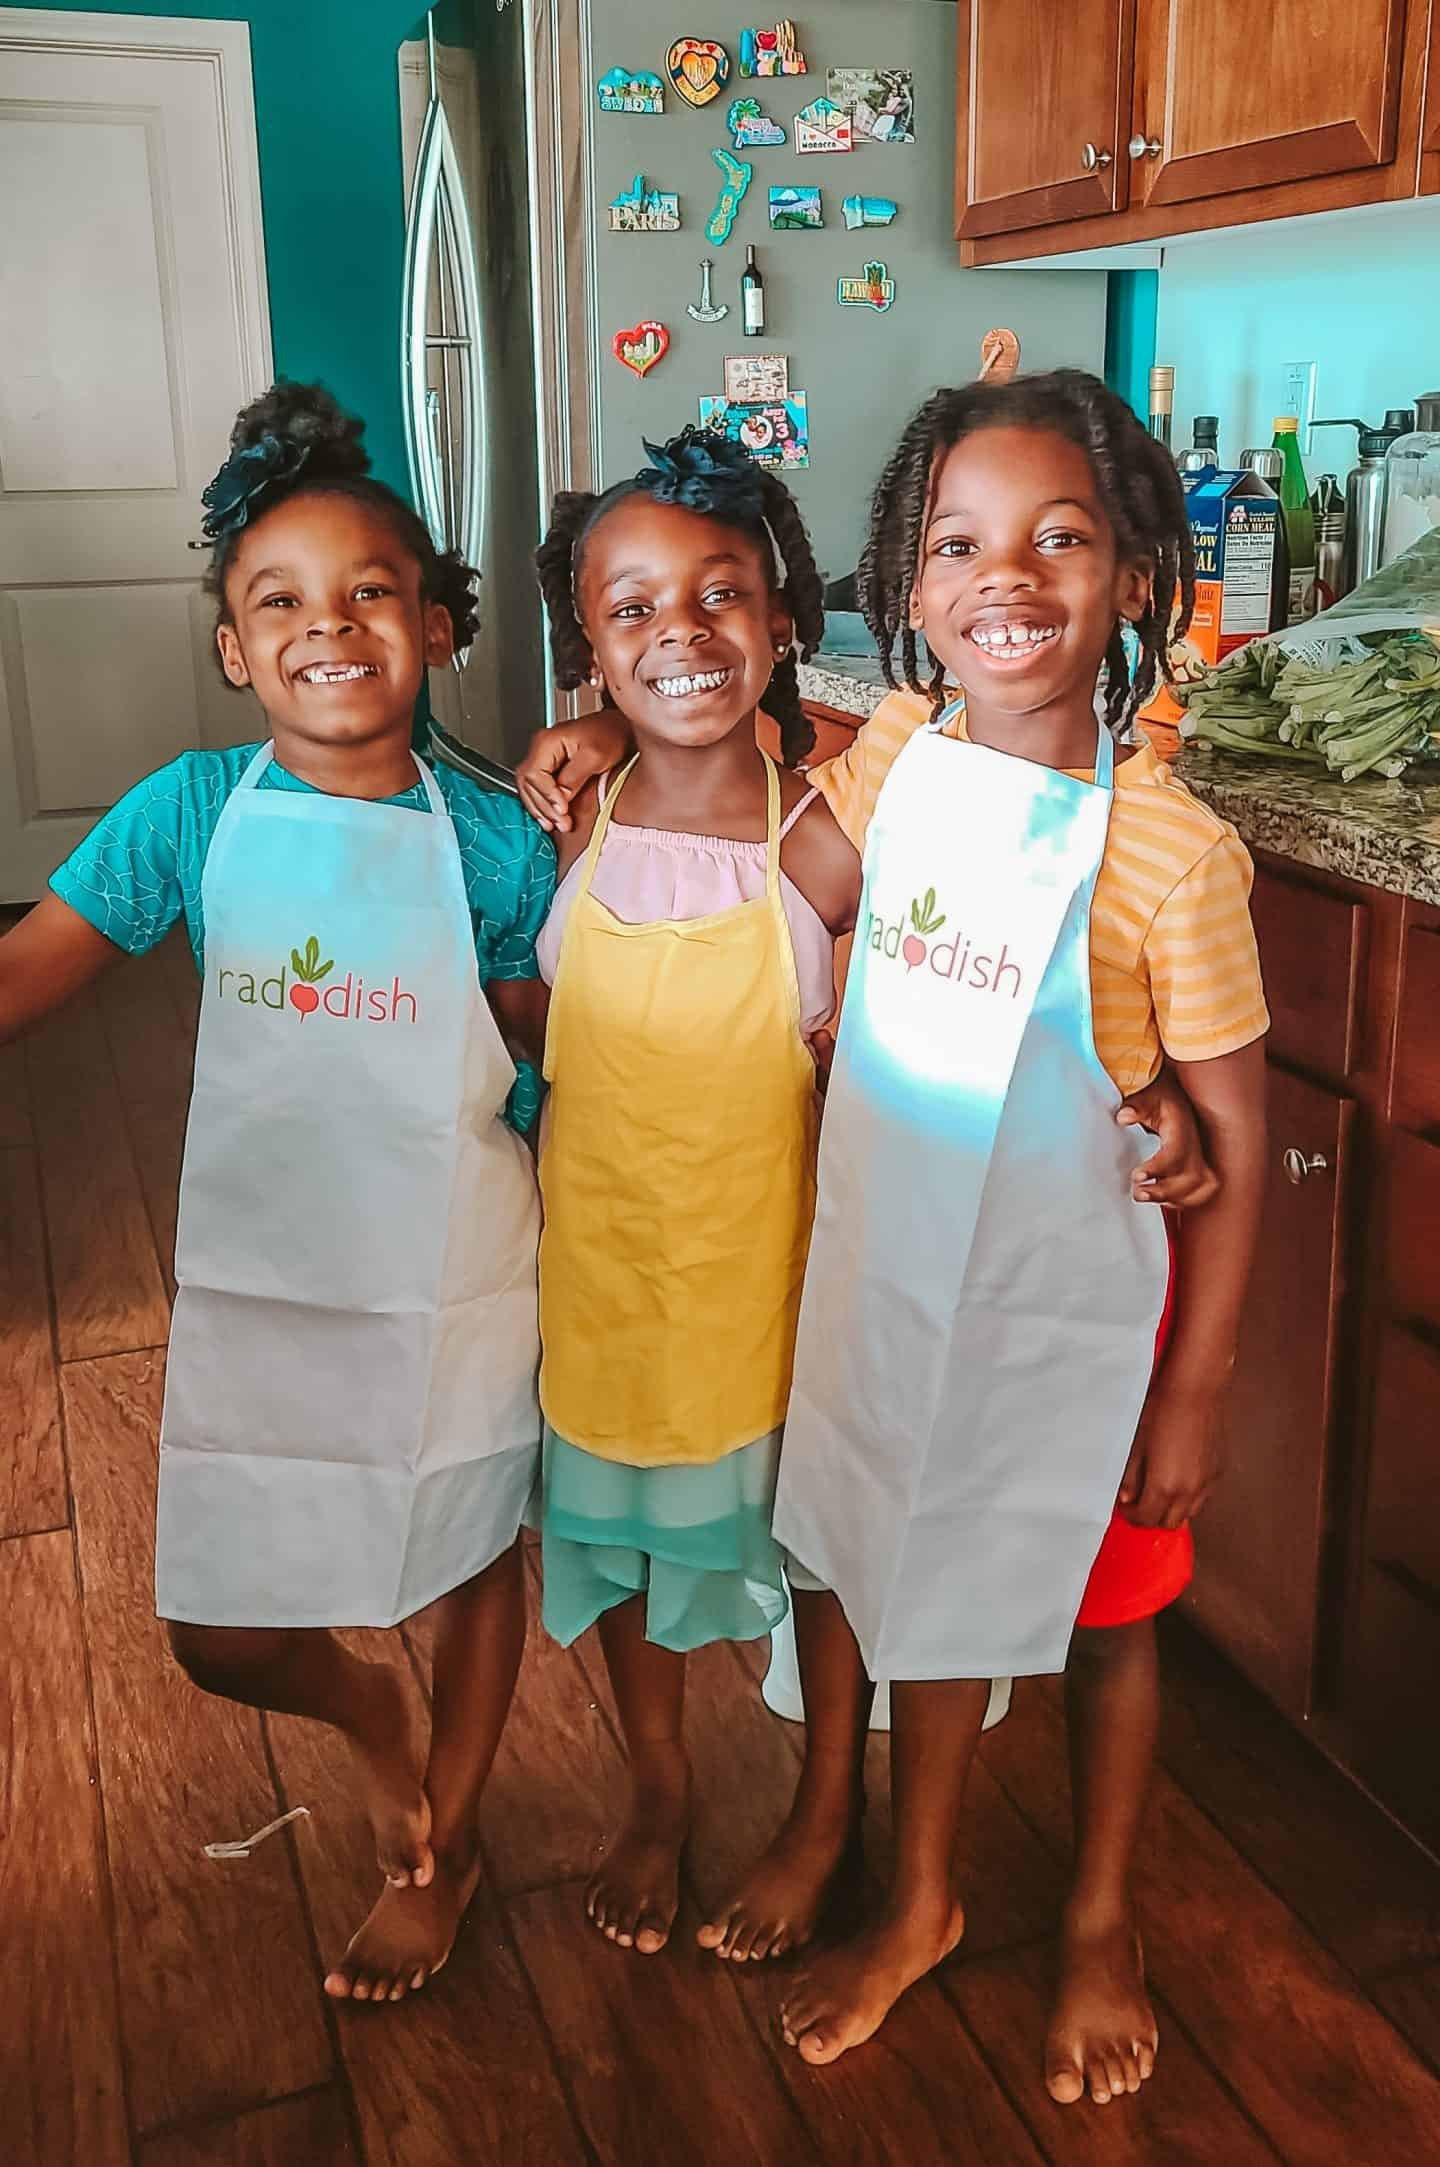 Three young children hug and smile as they get ready to cook and enjoy time socializing together even while home schooled.